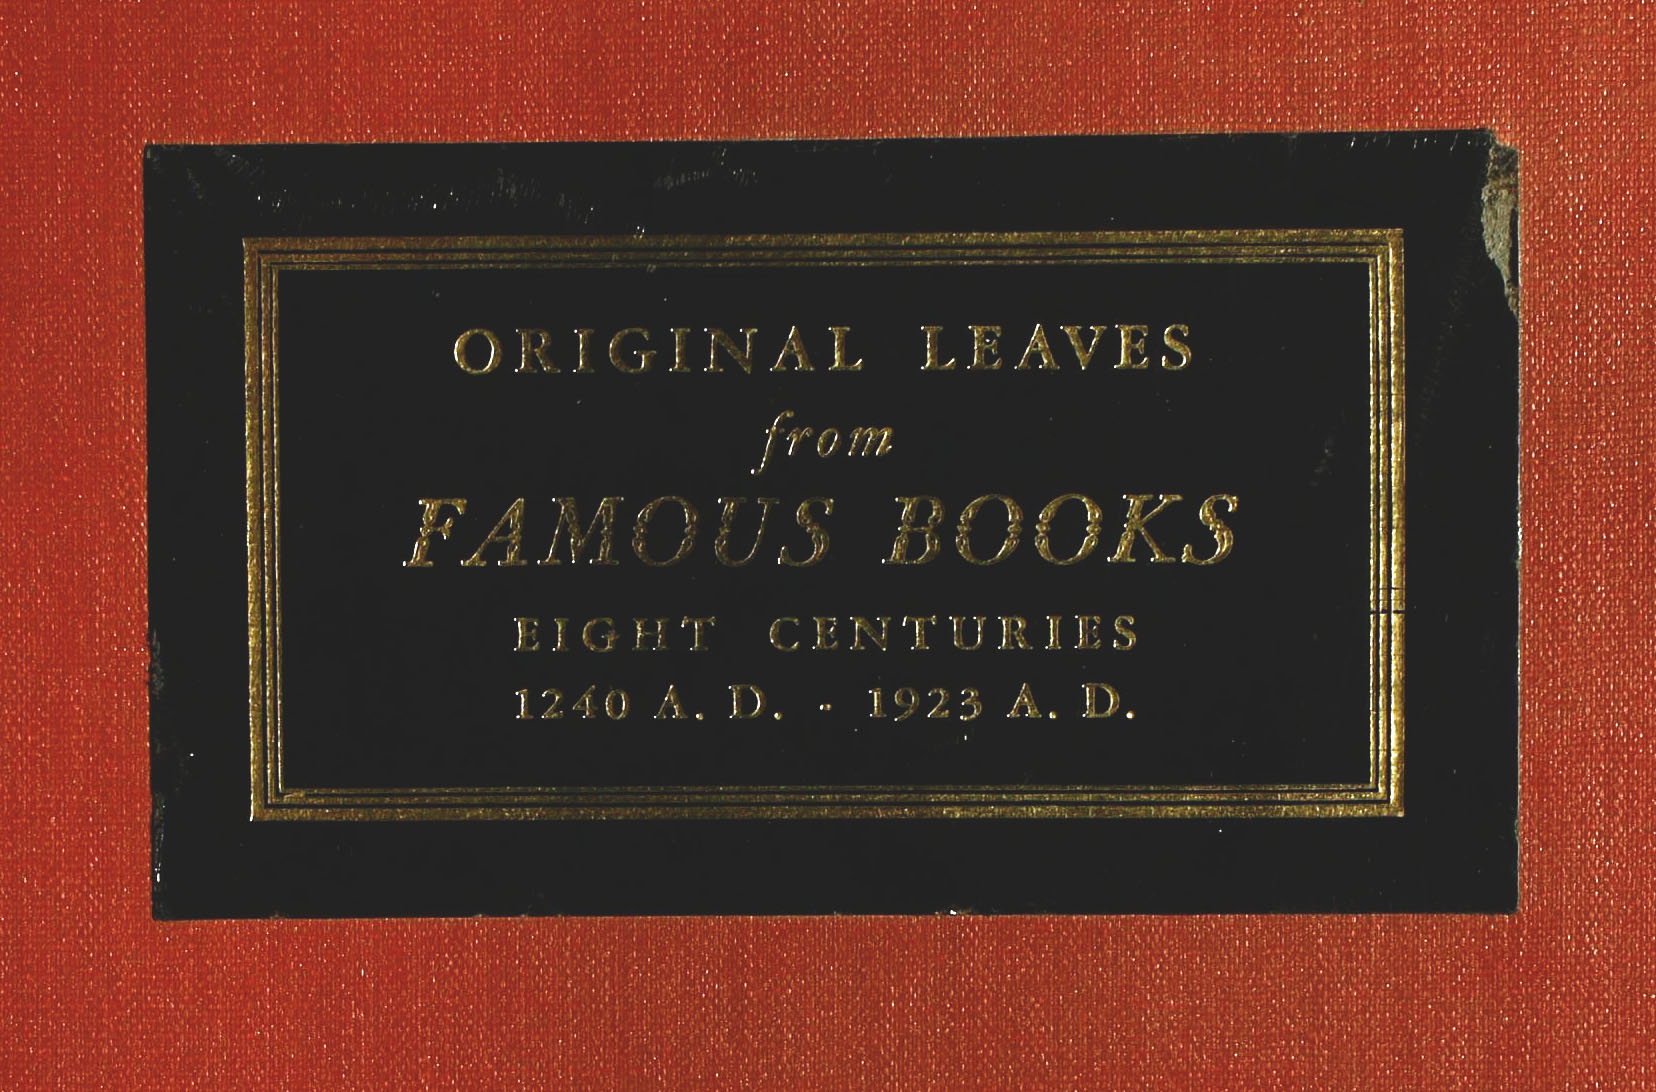 Title: Original Leaves from Famous Books, Eight Centuries 1240 A.D. - 1923 A.D.